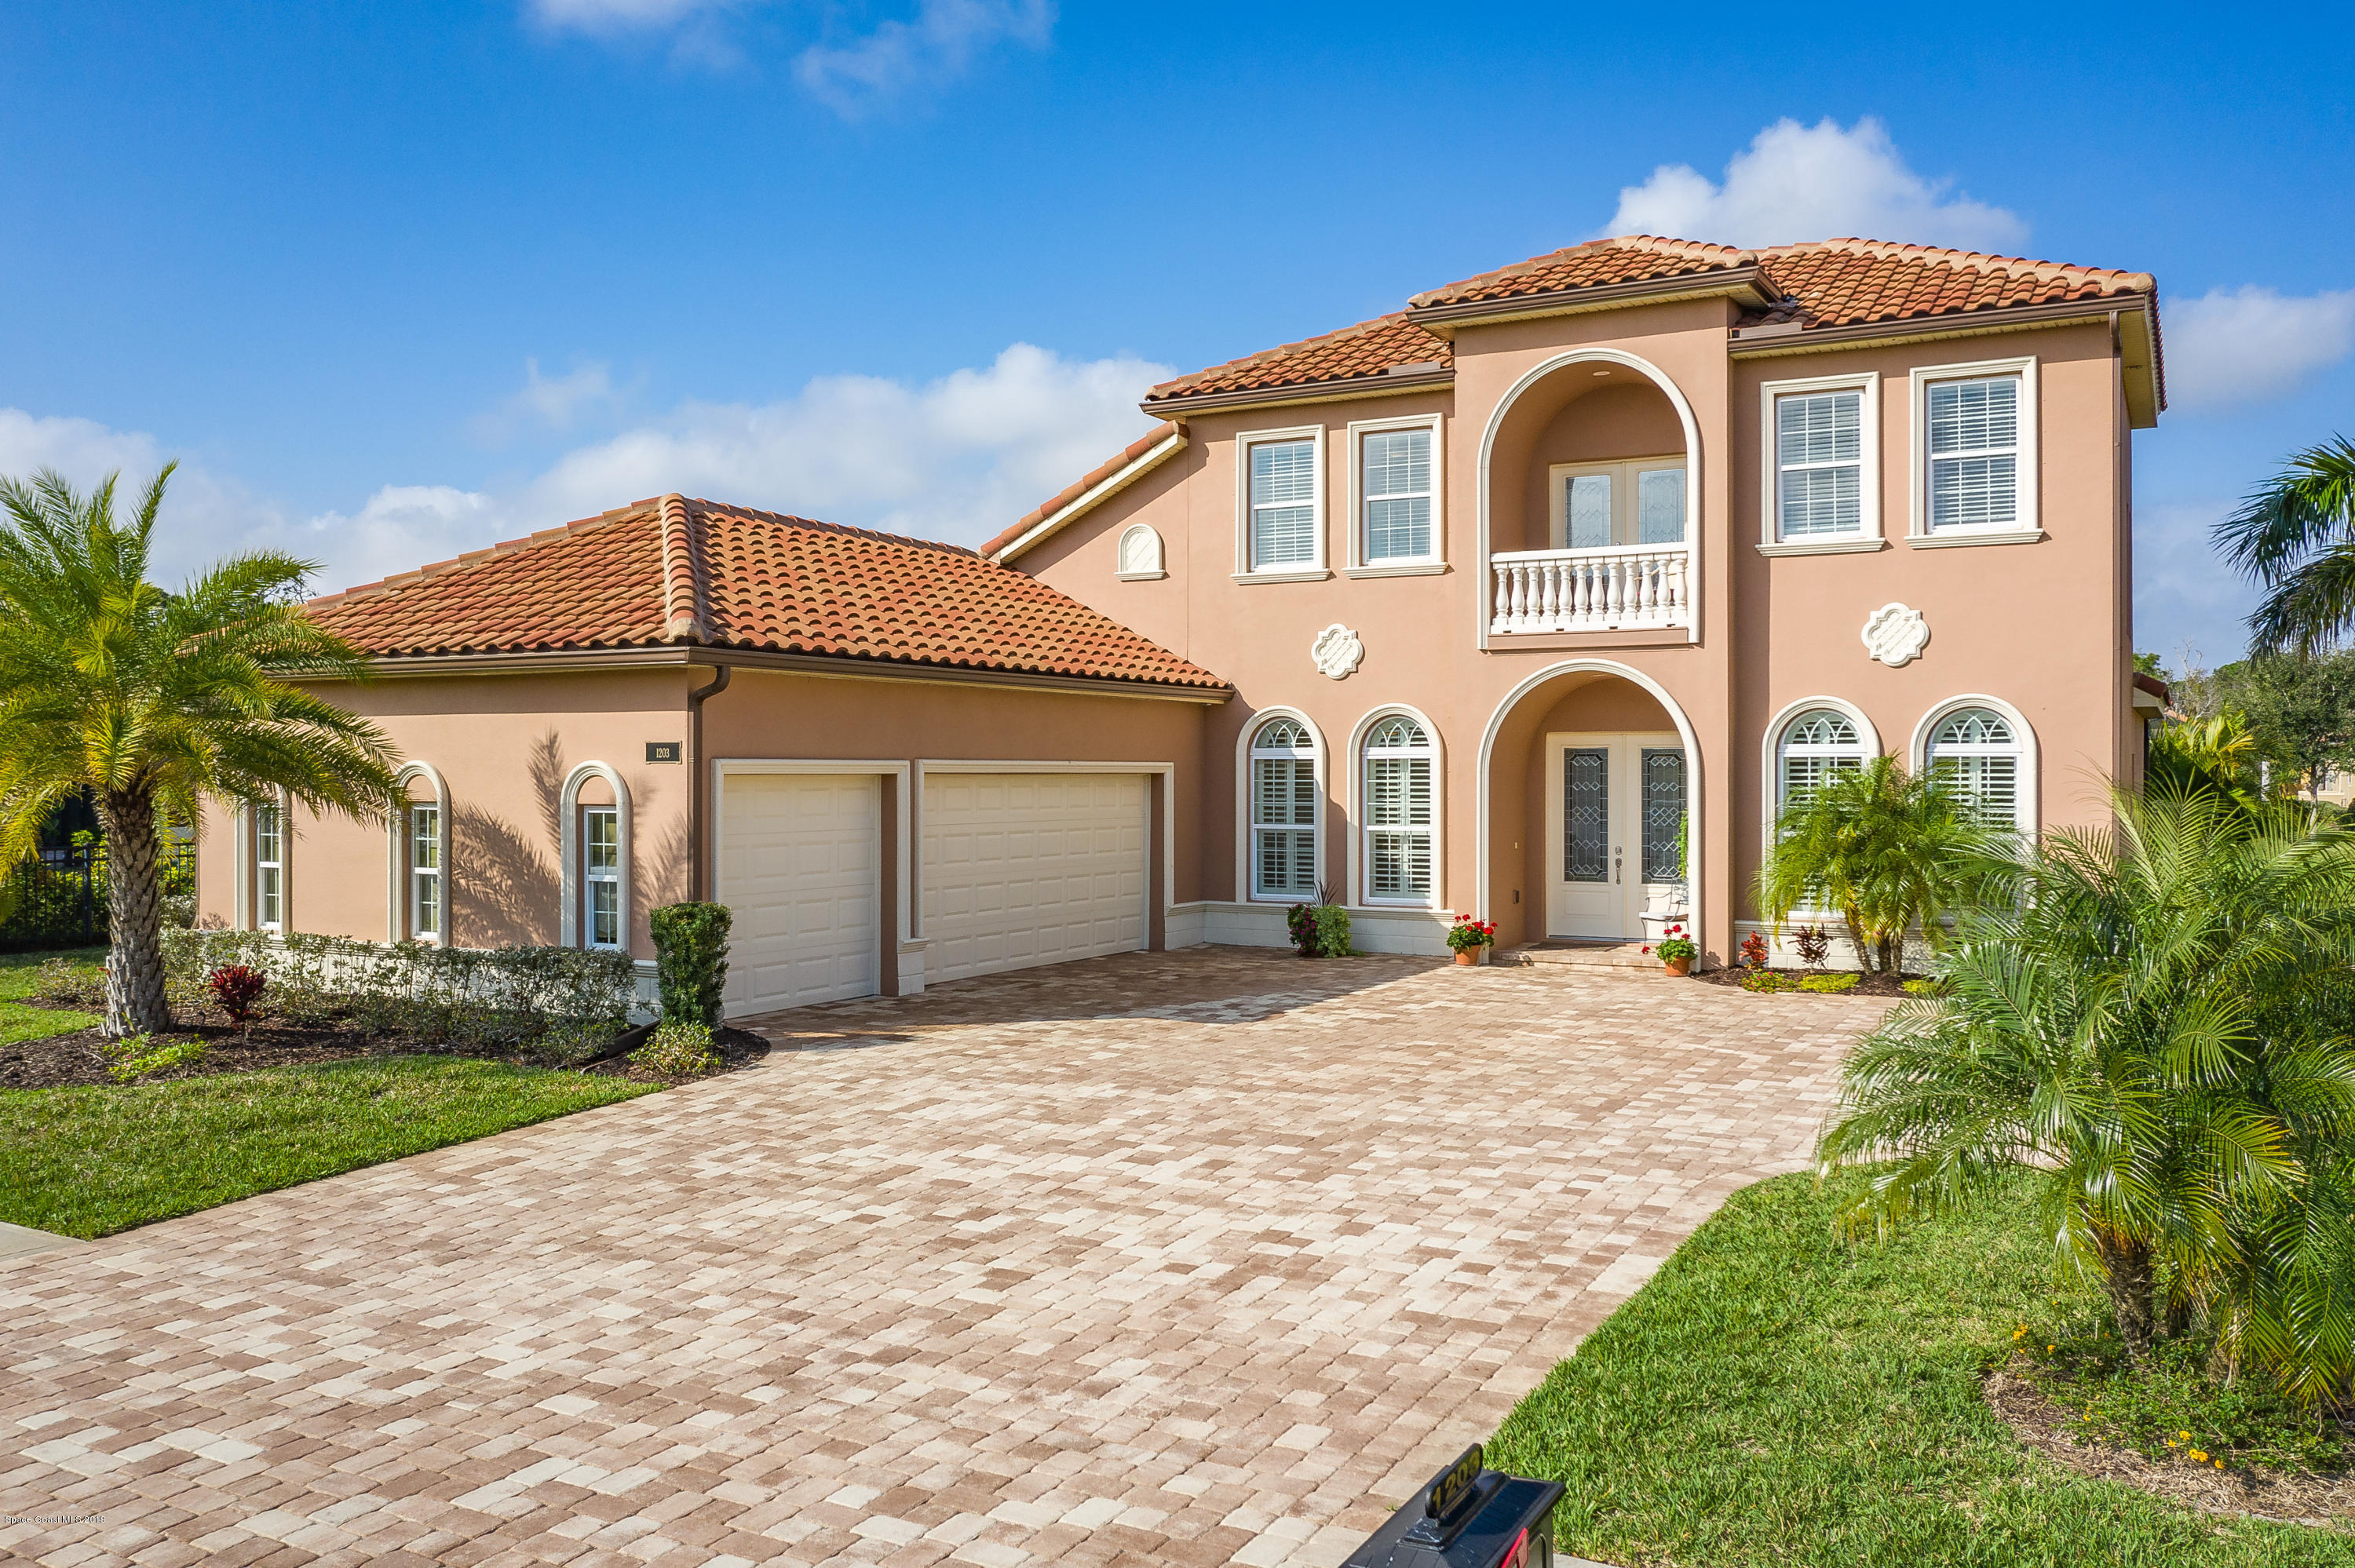 Single Family Homes for Sale at 1203 Tralee Bay Melbourne, Florida 32940 United States